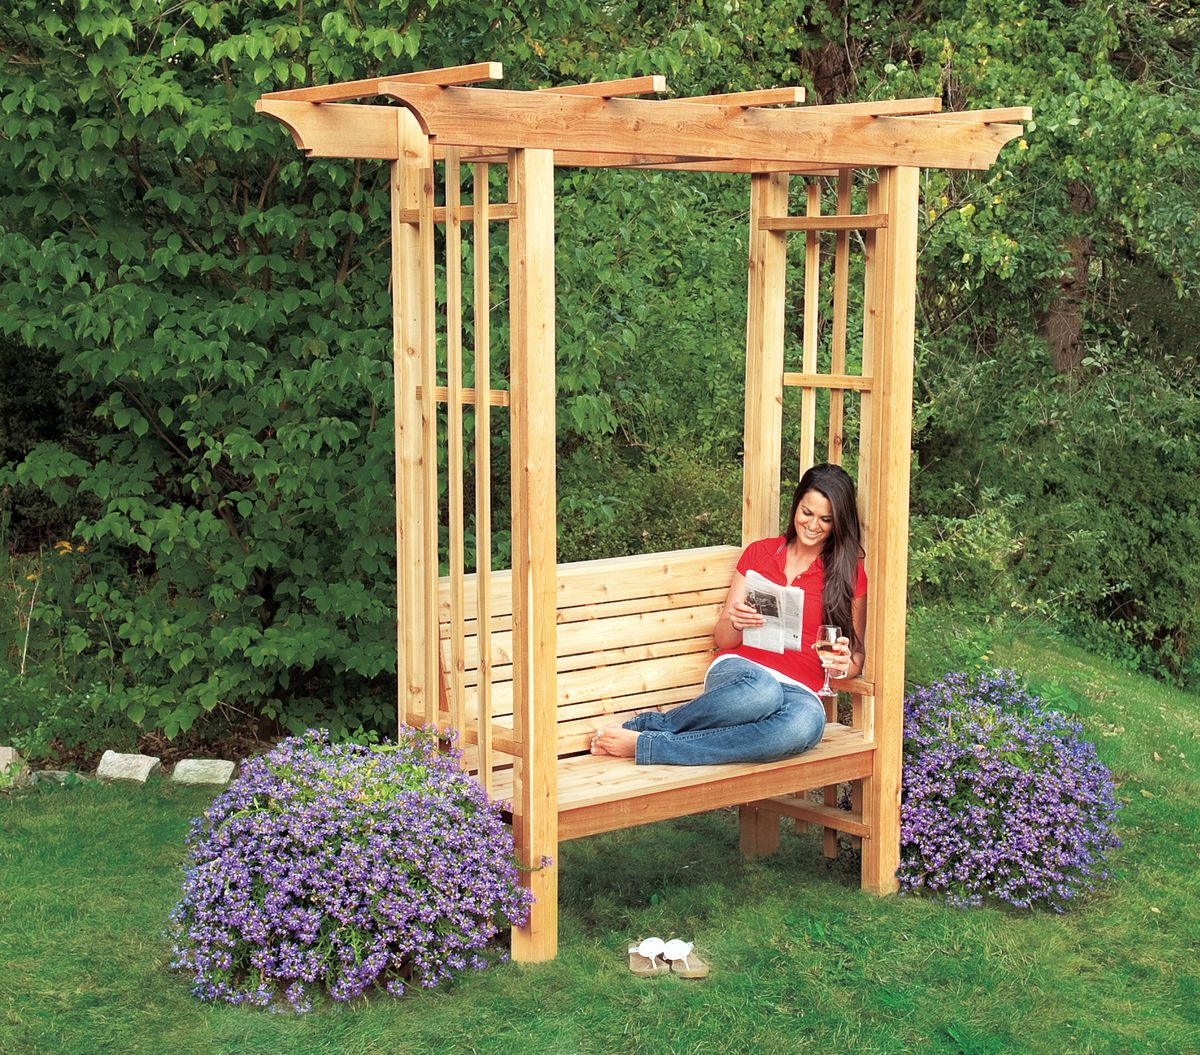 4 Diy Outdoor Projects You Can Make Out Of Real Cedar Wood This Old House